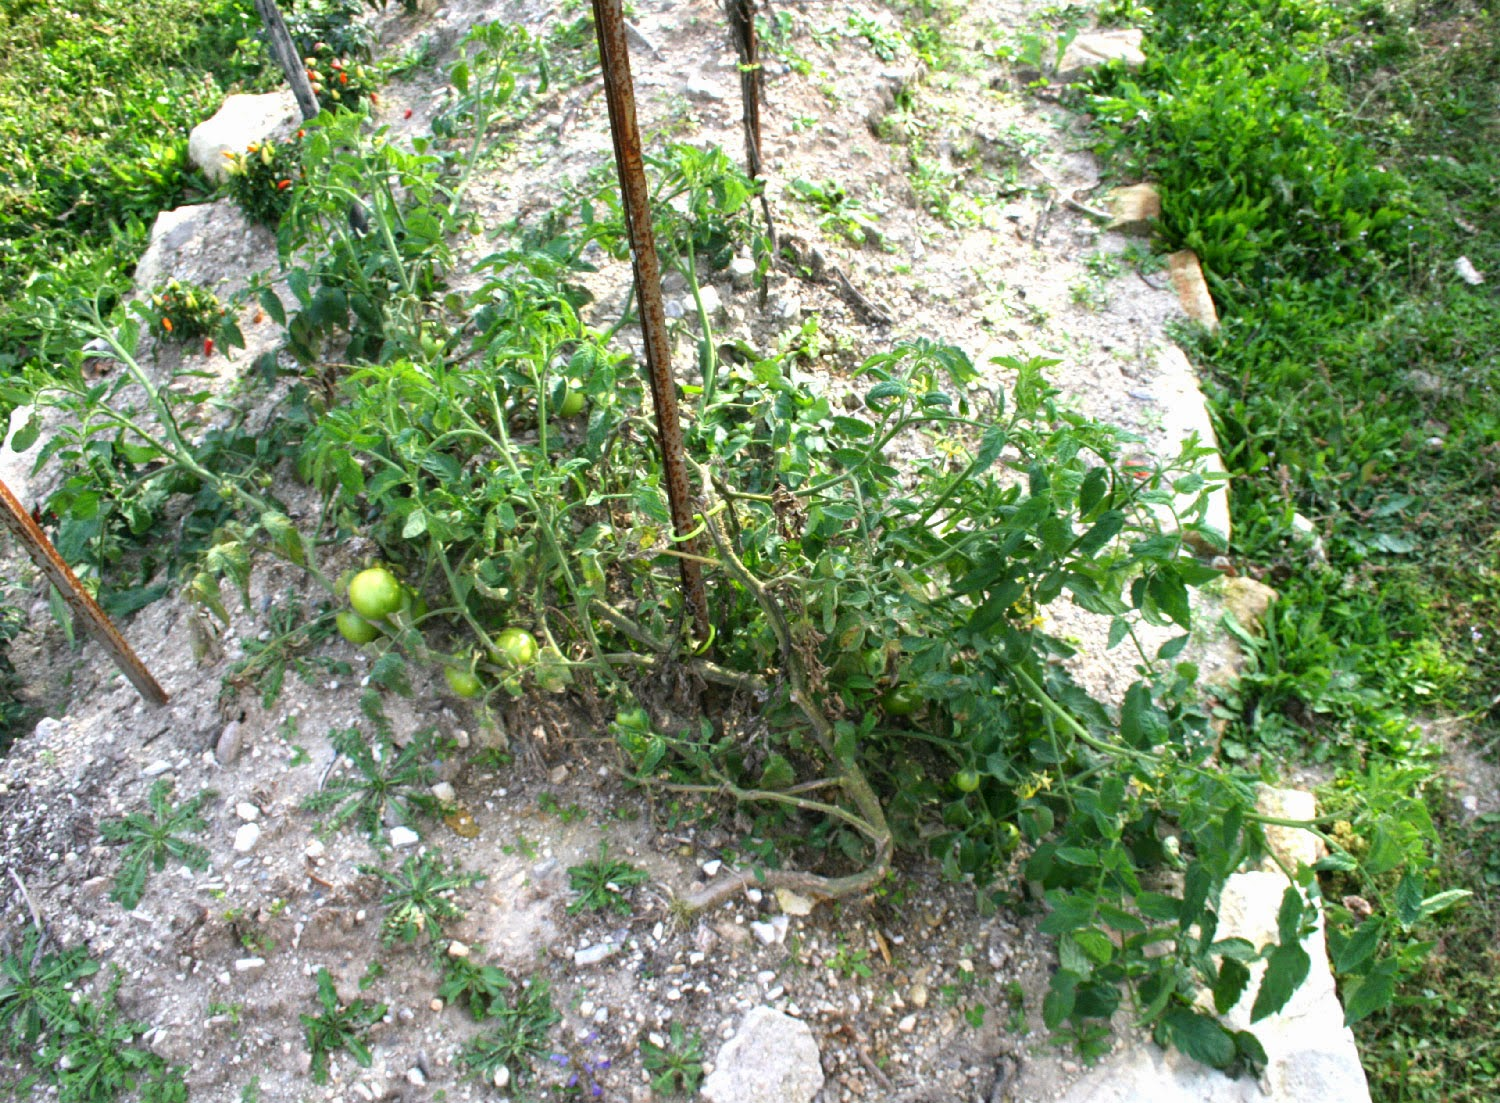 The monster tomato plant